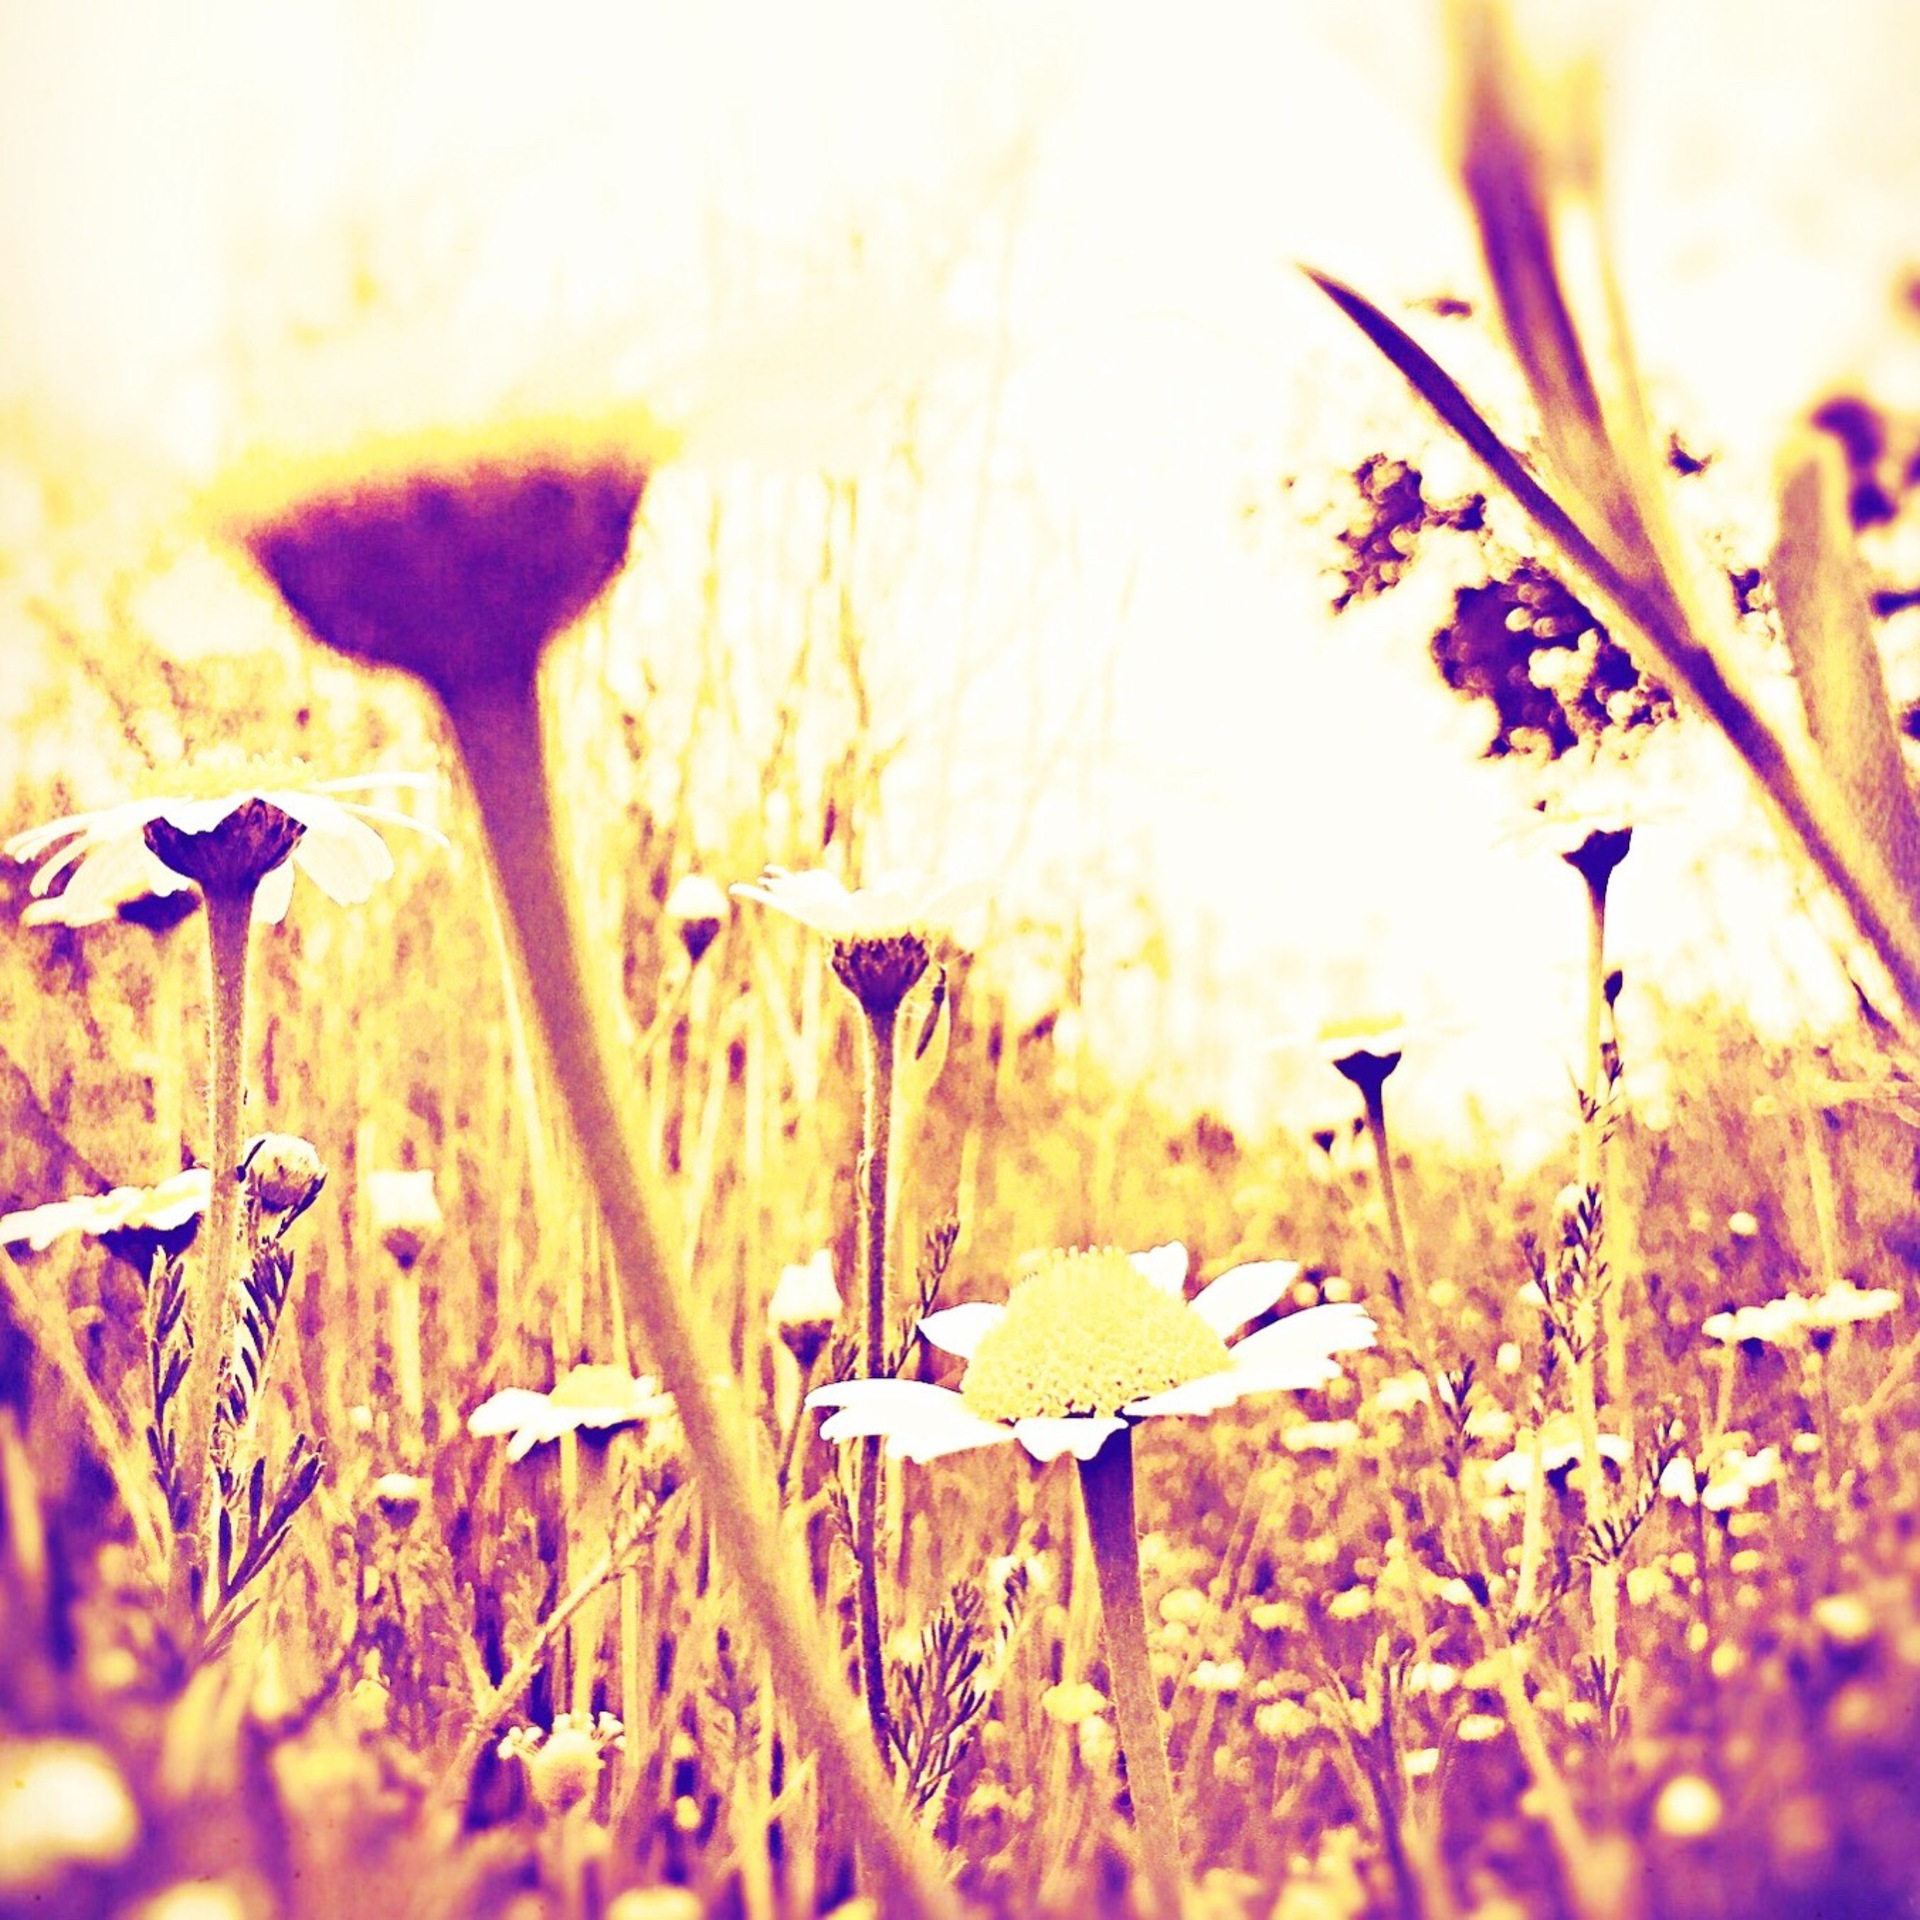 Daisies in summer sun | mezmic, grass, nature, flower